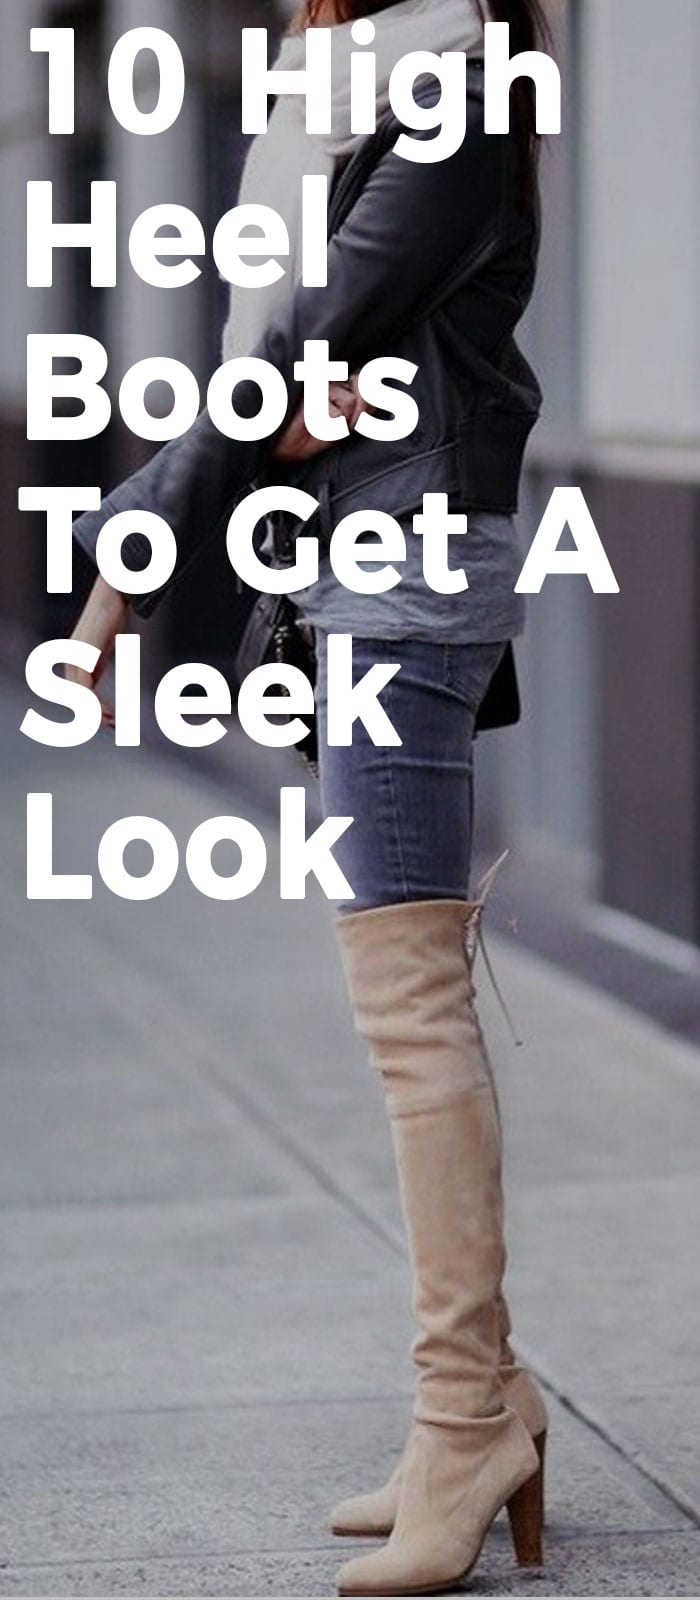 High Heel Boots To Get A Sleek Look